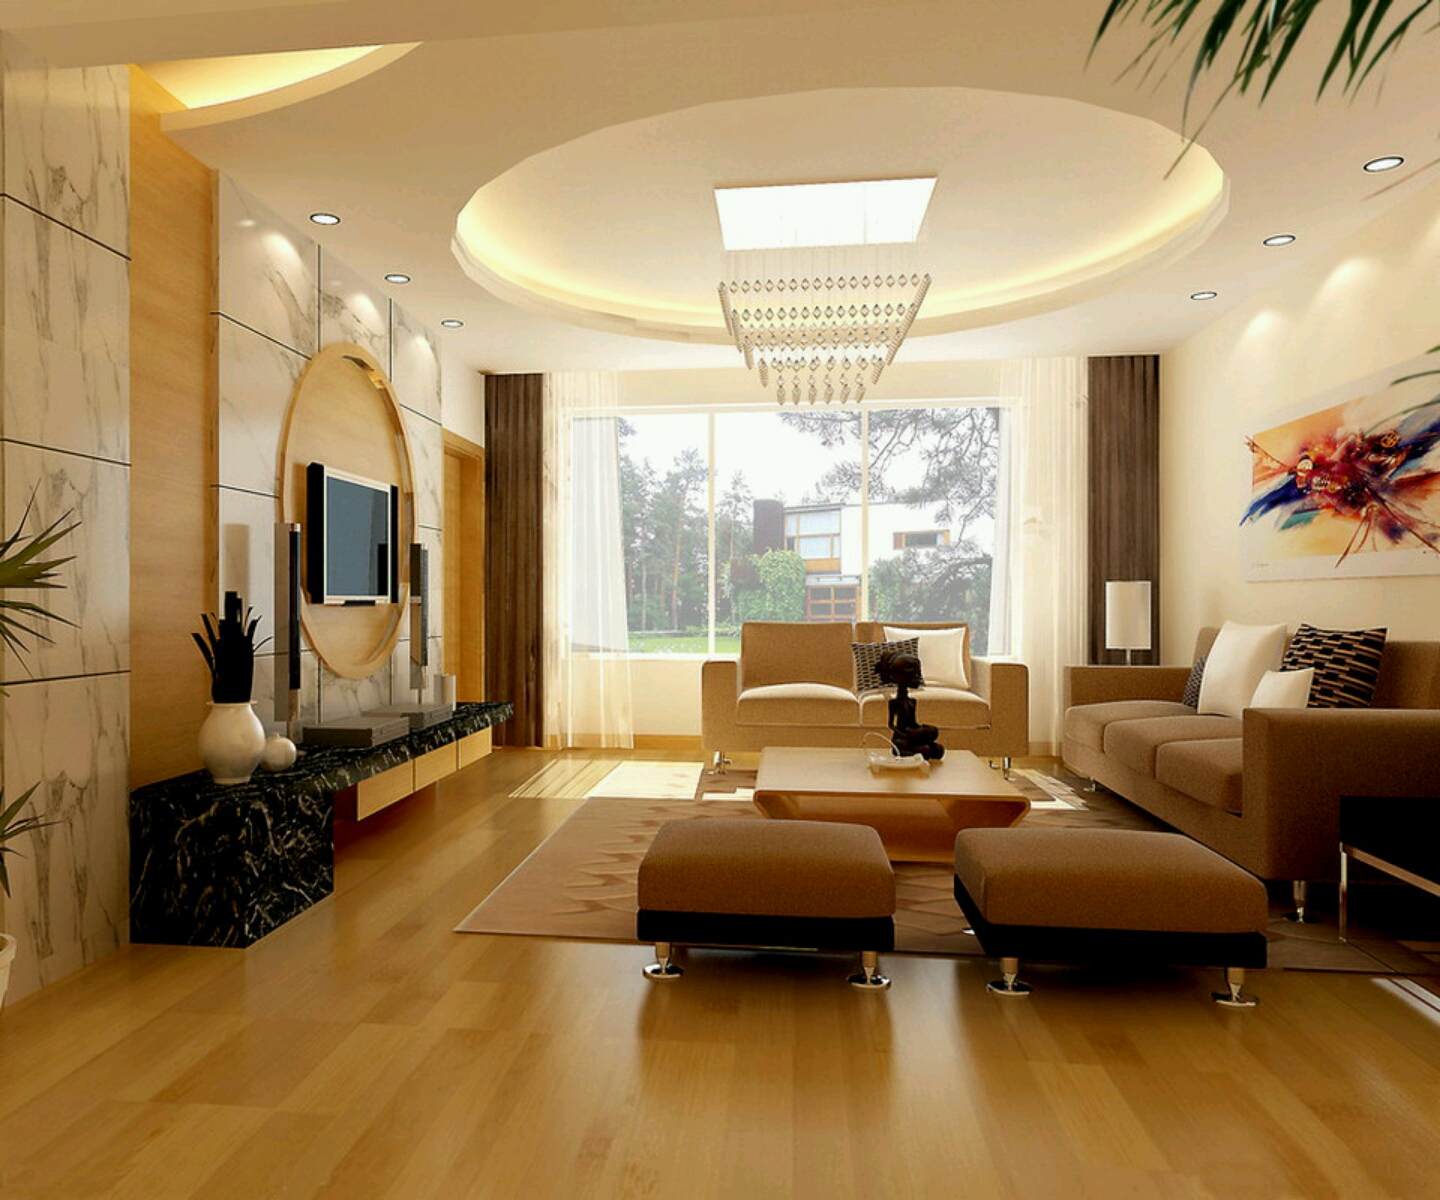 Modern interior decoration living rooms ceiling designs for Room design of house